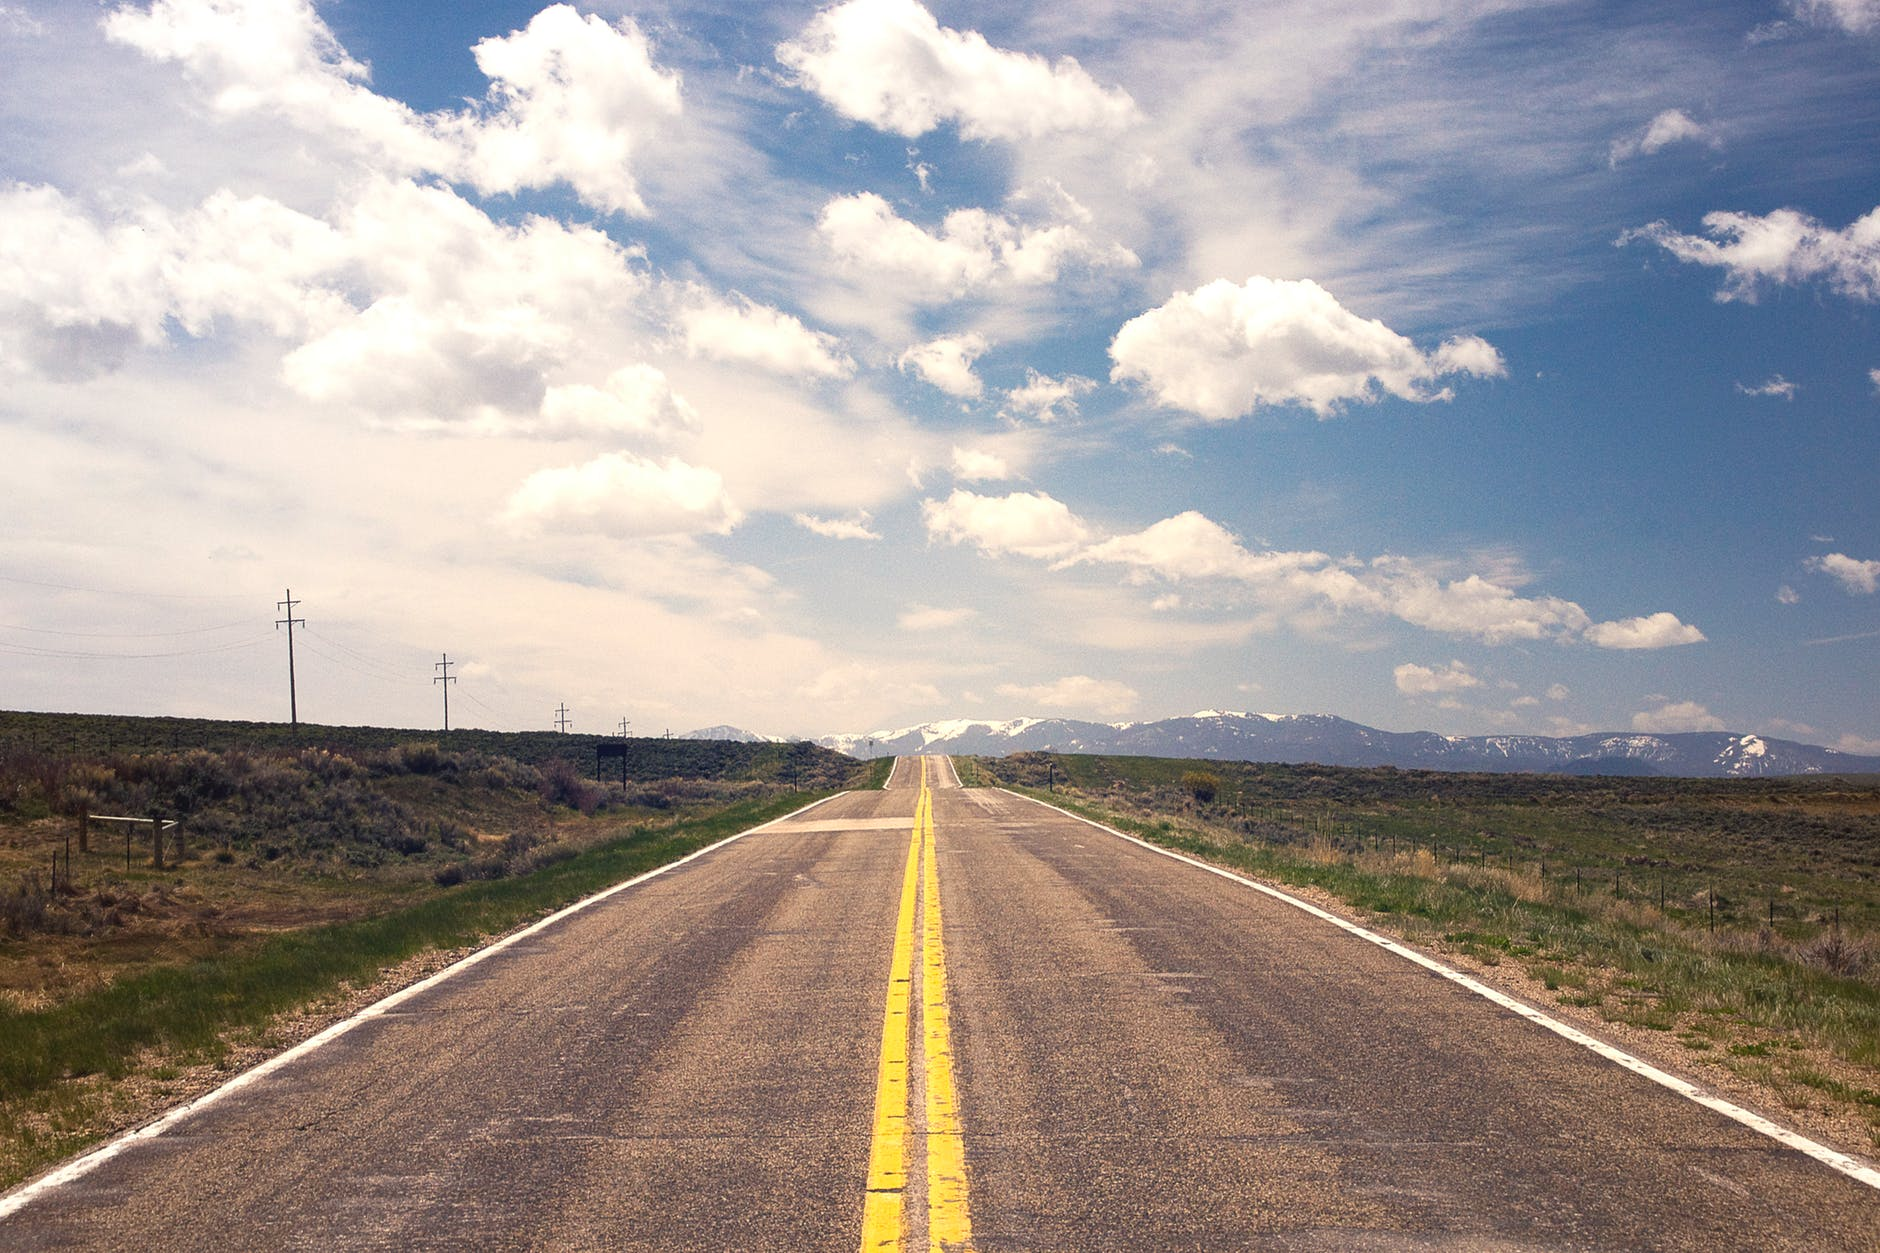 A road, illustrating going forward in financial marketing